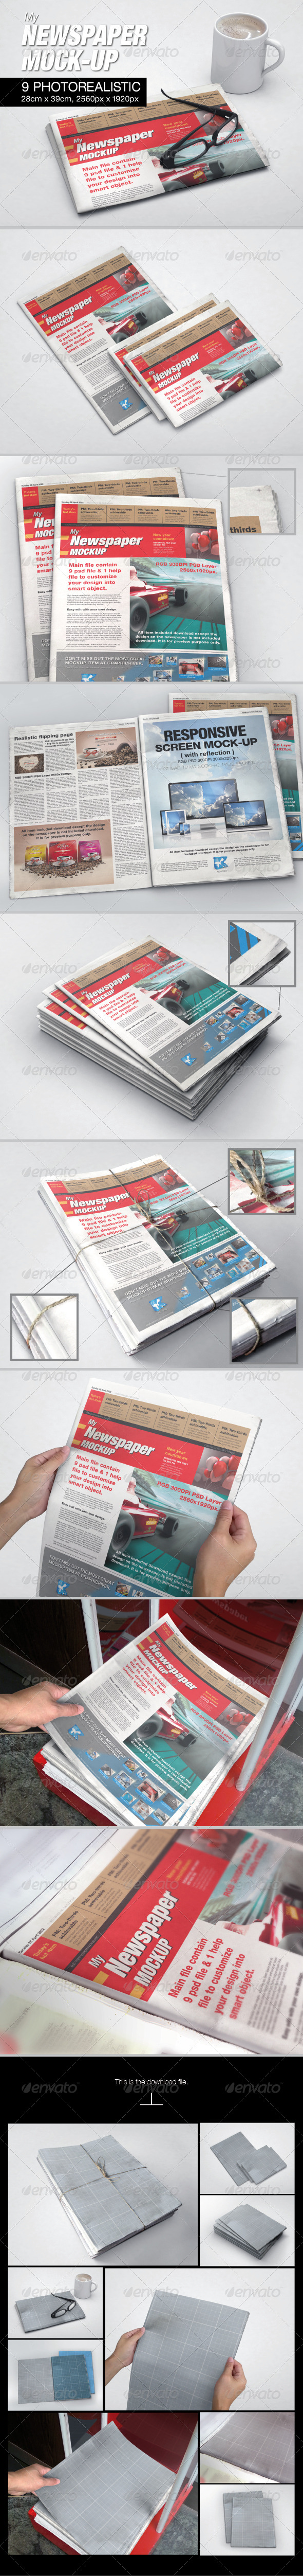 MyNewspaper Mock-up - Print Product Mock-Ups